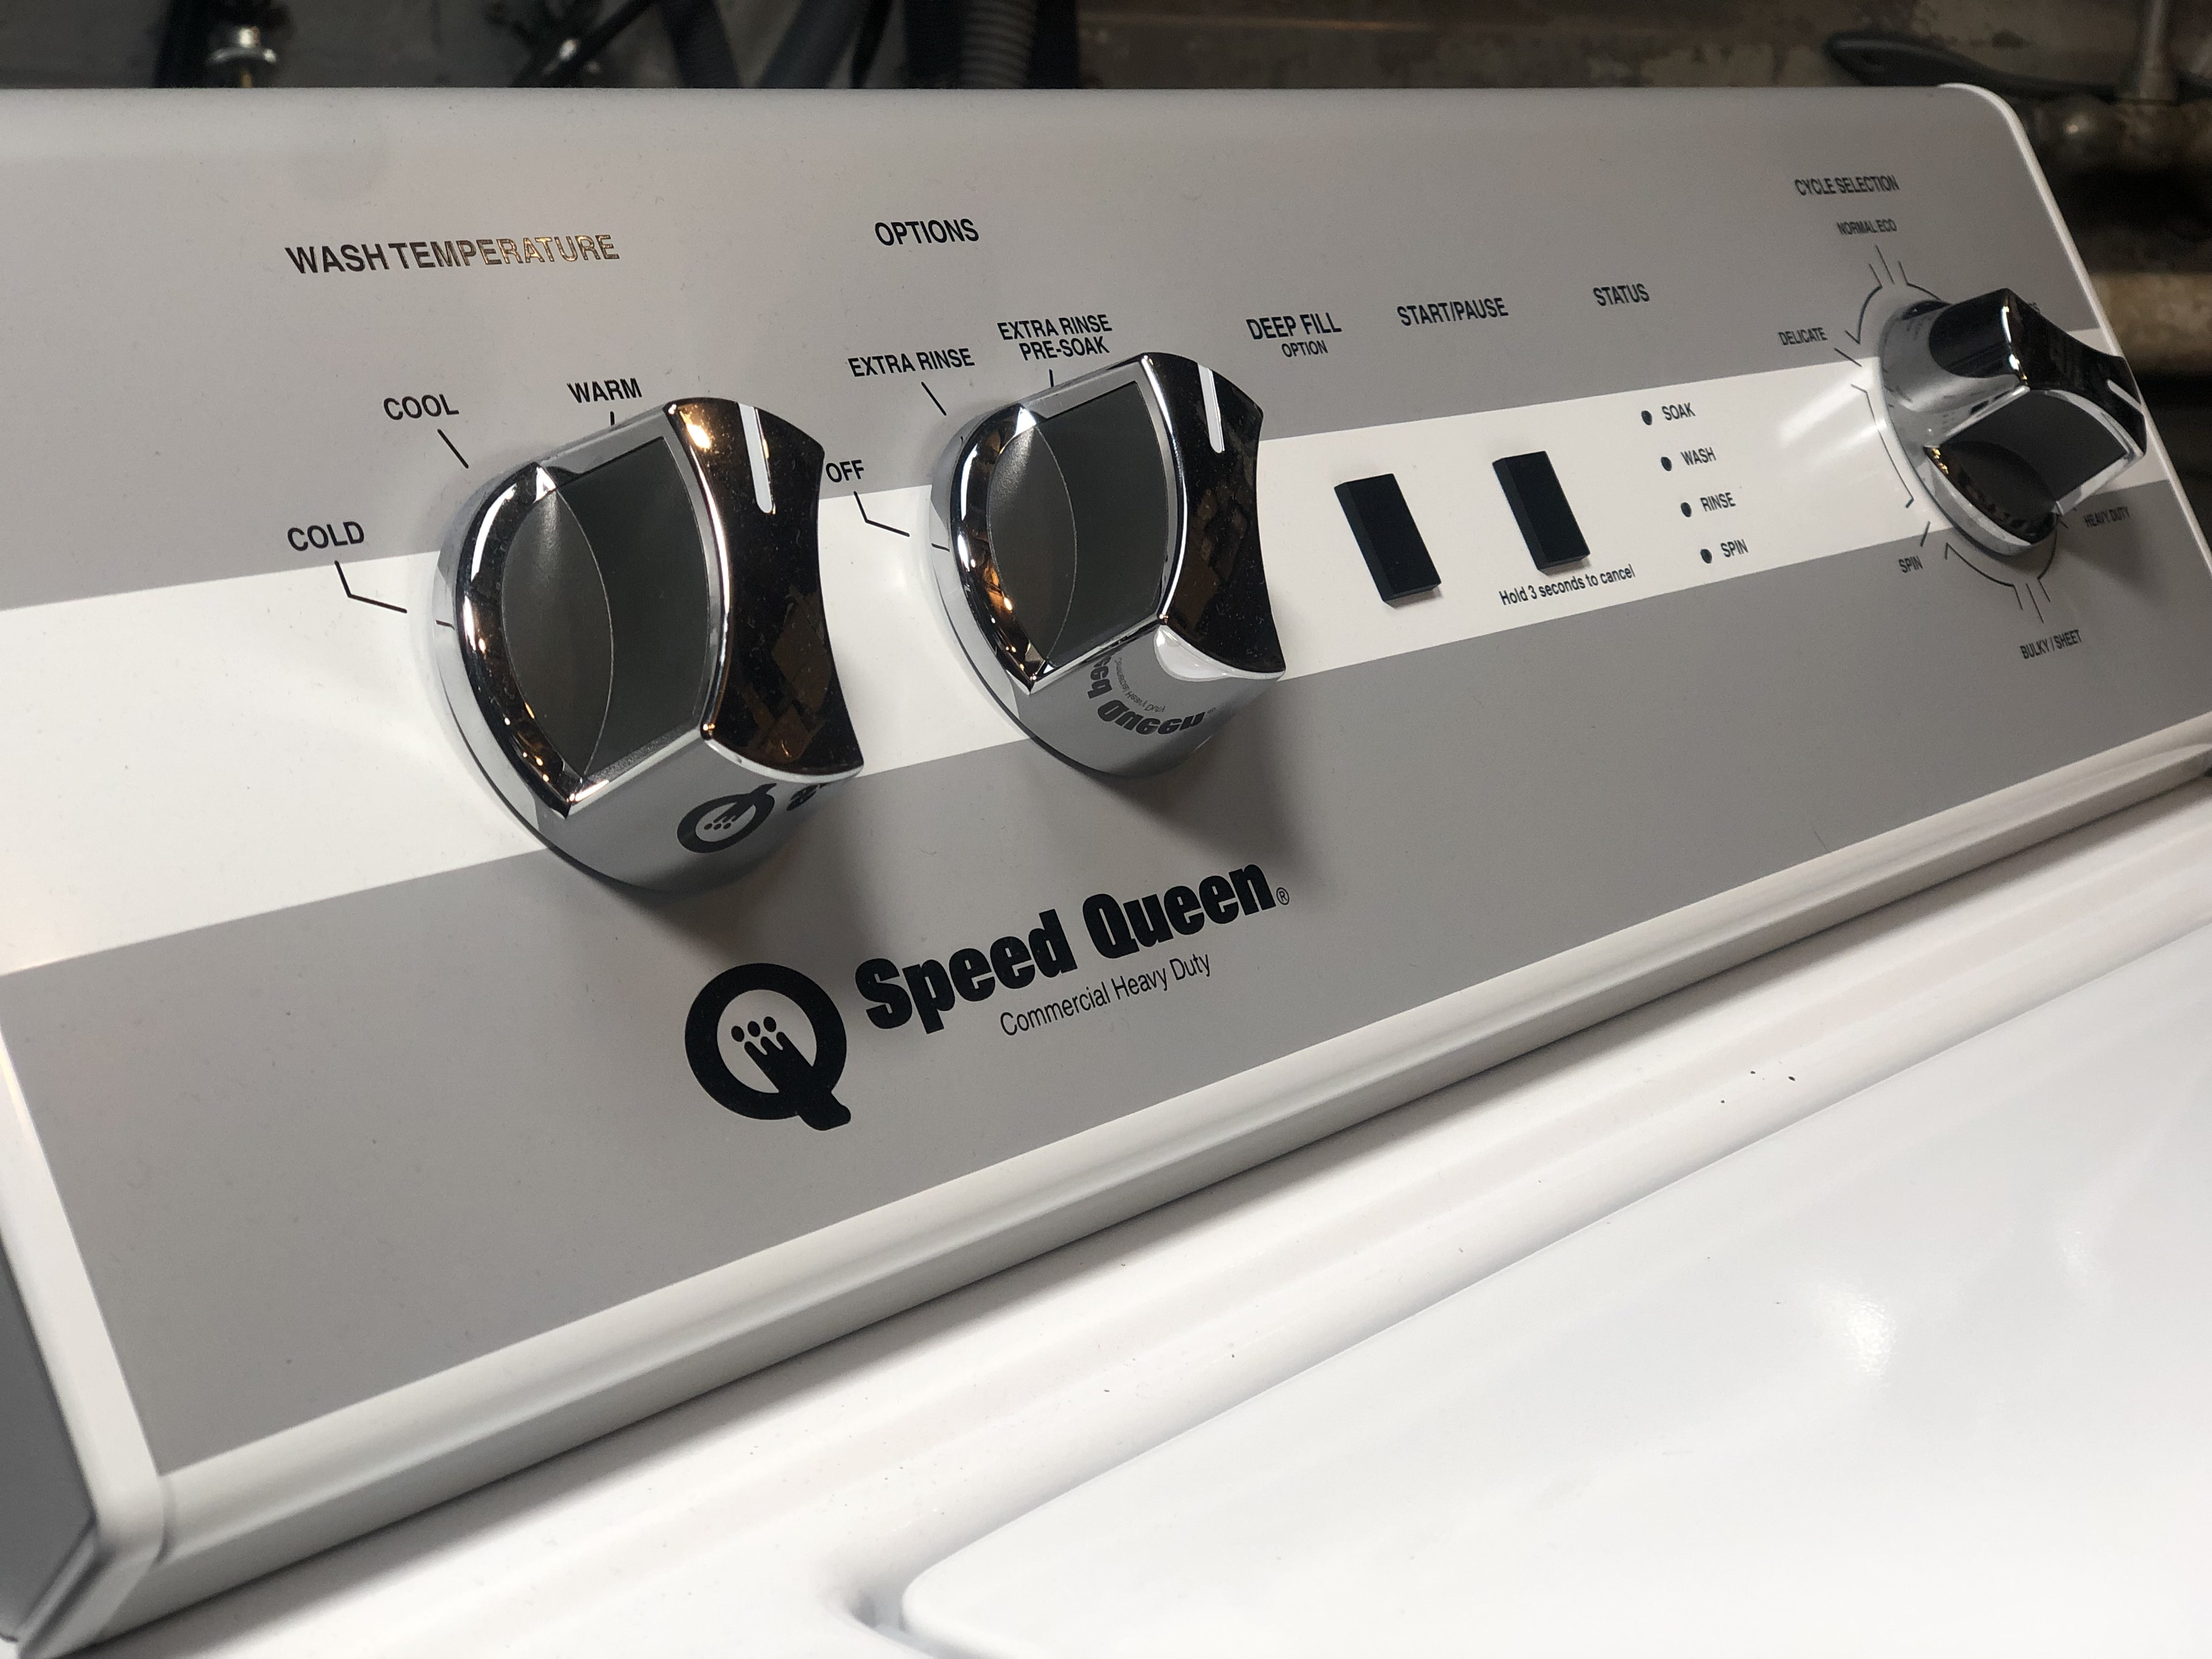 2019 Speed Queen Washer Tc5000wn Awn632sp116tw01 Lorain